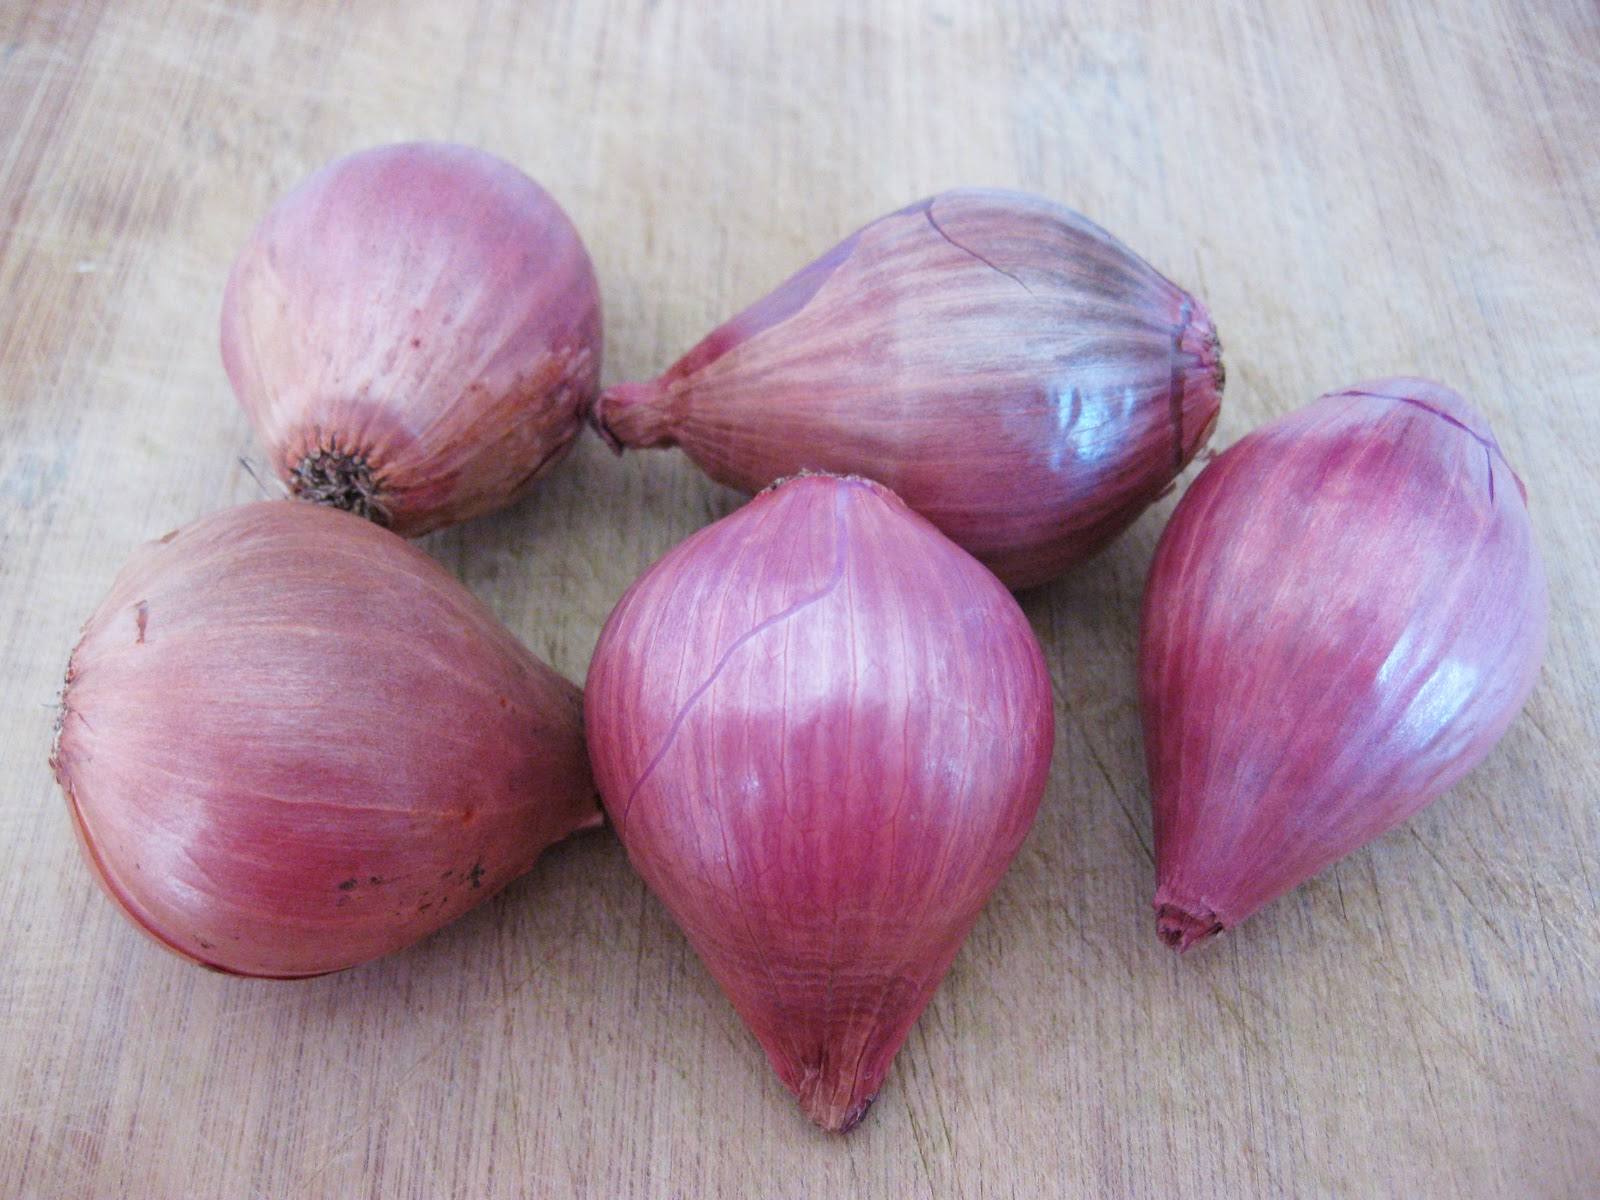 how to tell if shallots are bad